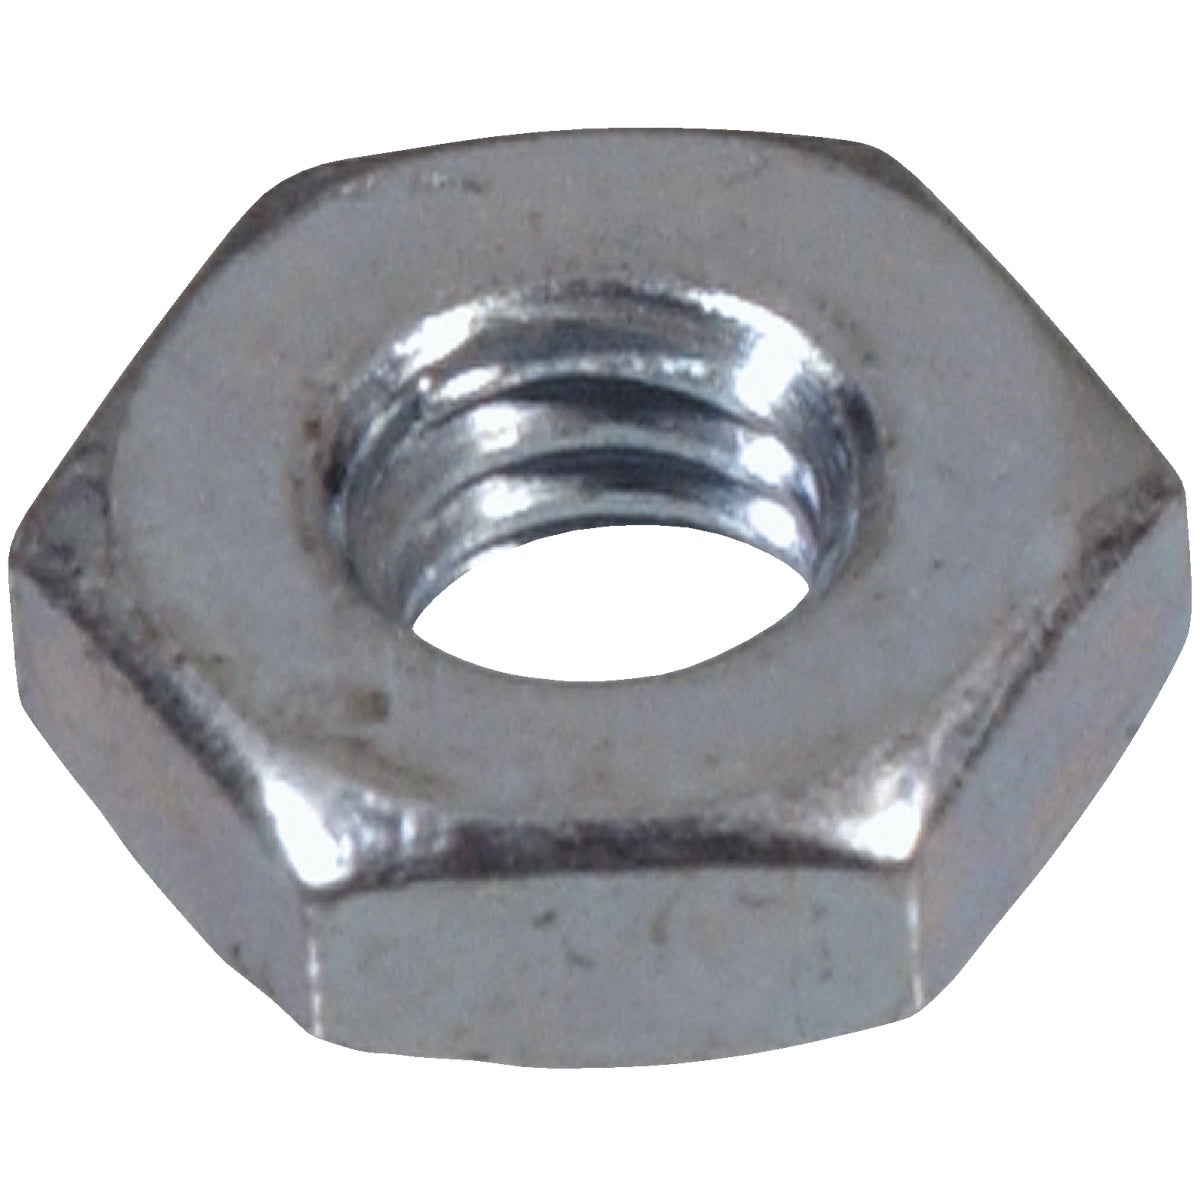 6-32 HEX MACH SCREW NUT - 140015 by Hillman Fastener